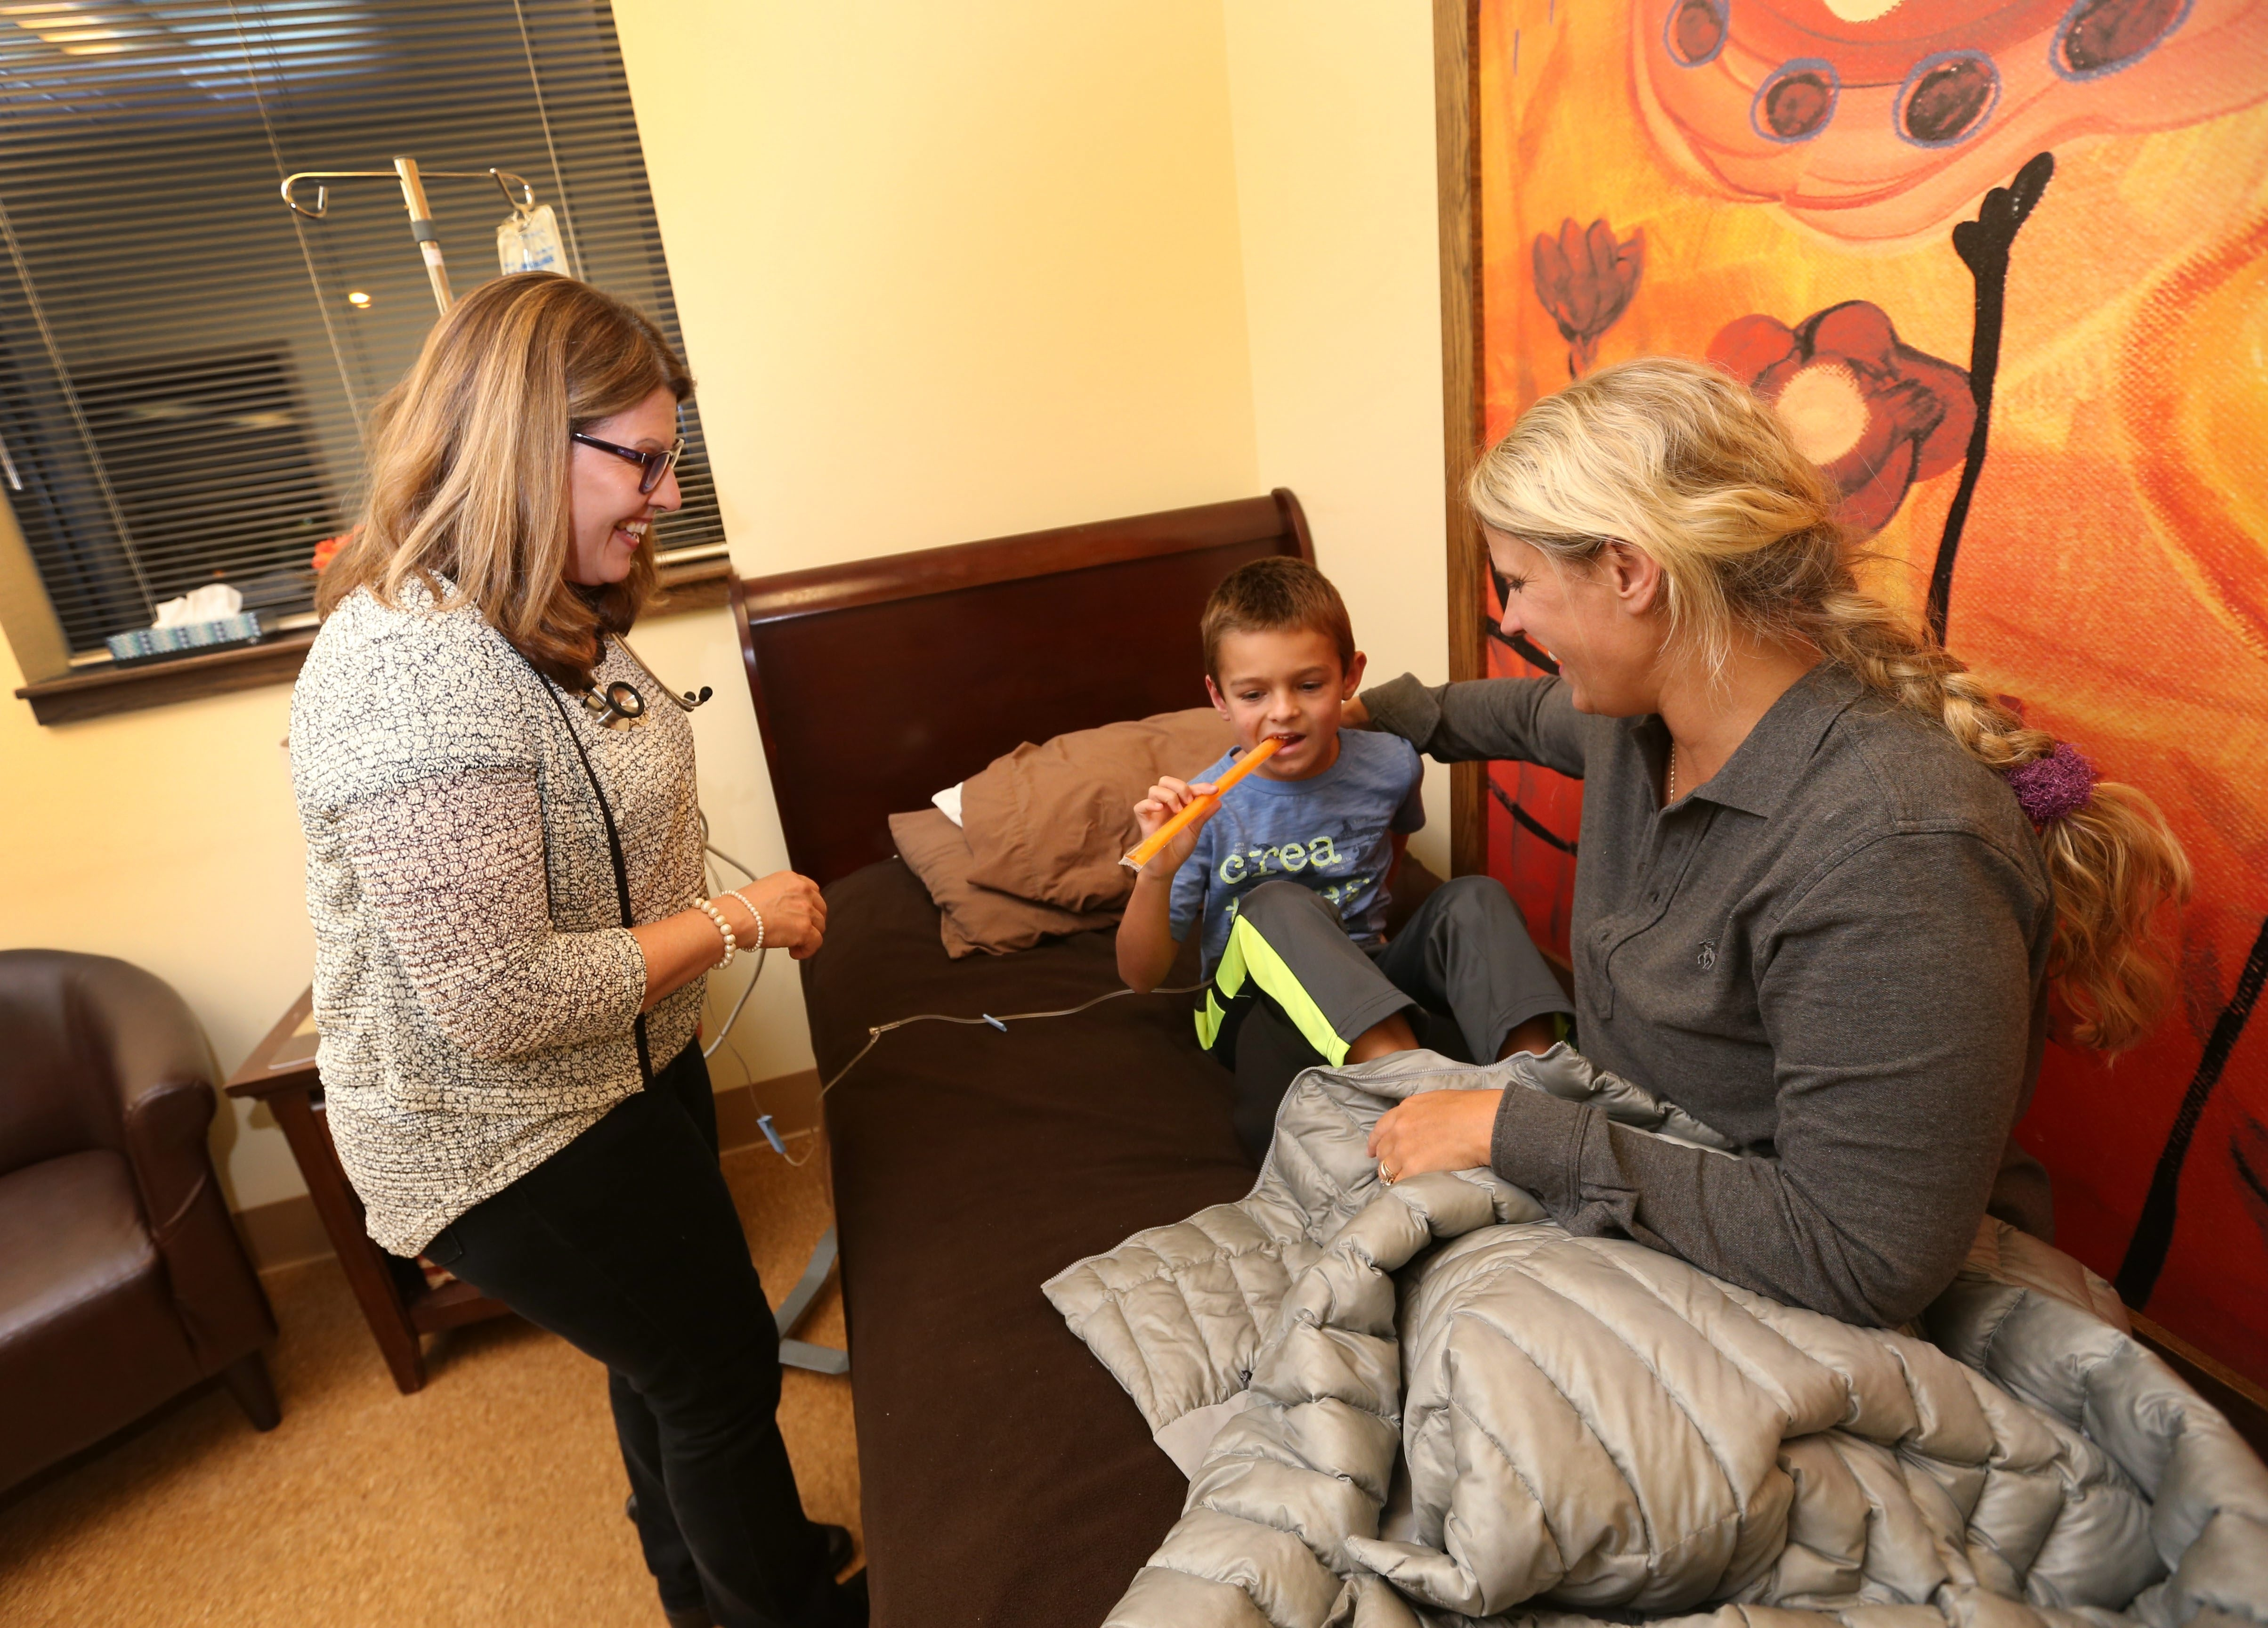 Nurse practitioner Becky Roloff brings a popsicle to  Andrew Jakubowski, 6, of Lancaster, while caring for him at Pediatric  & Adolescent Urgent Care of WNY, which is open on nights and weekends to give families an alternative to the emergency room.  His mom Kristen Jakubowski sits on the bed with him as he gets an IV. (Sharon Cantillon/Buffalo News)